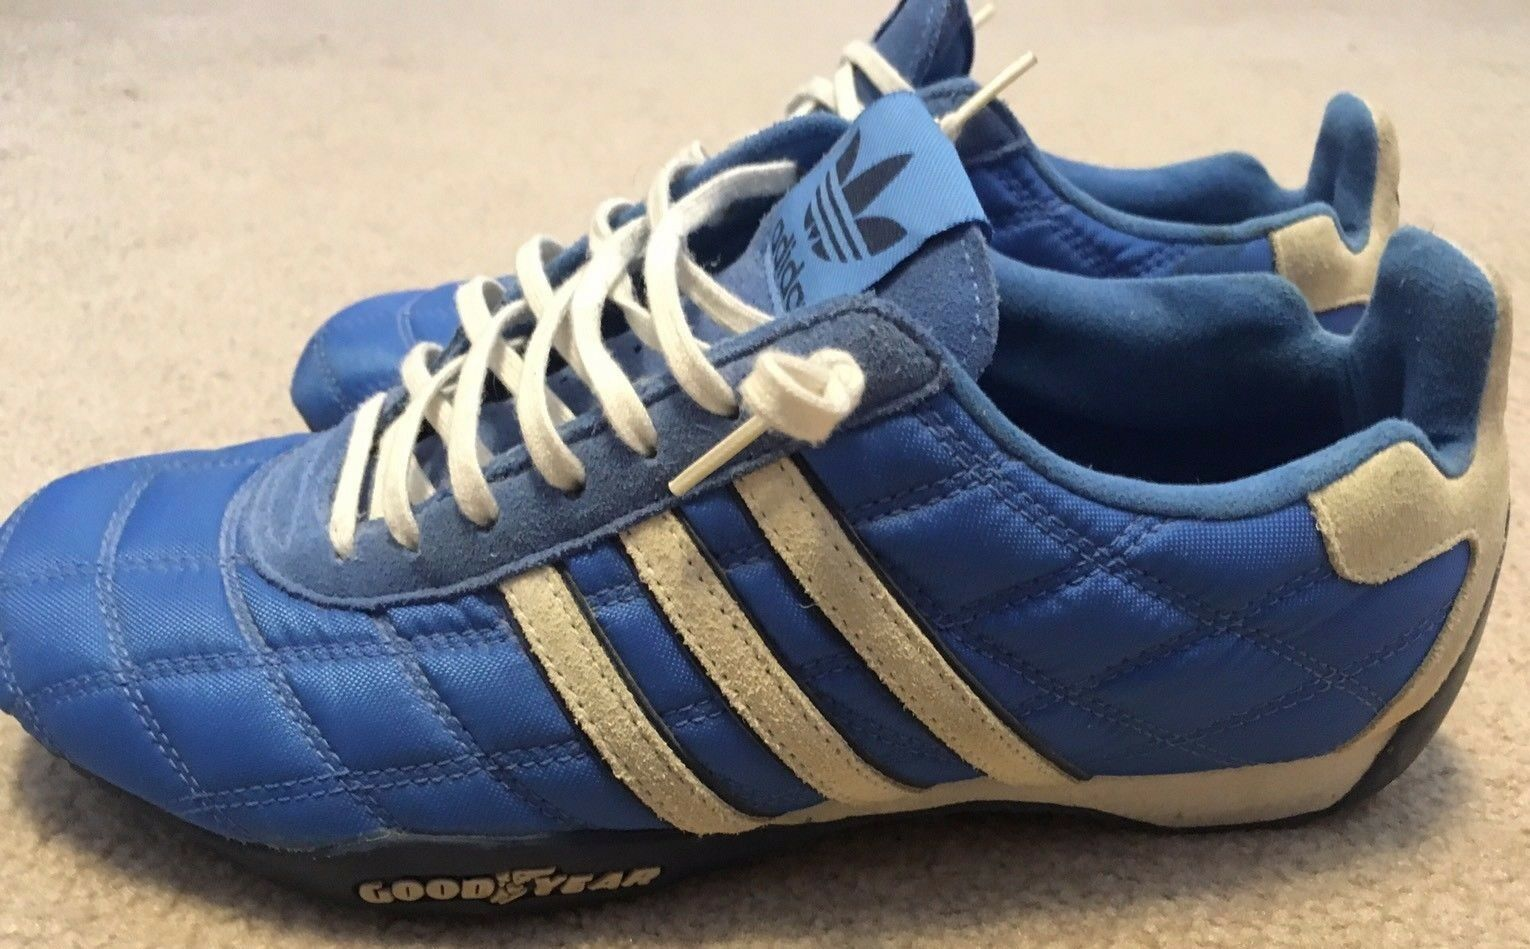 Adidas Tuscany Goodyear Driver's Racing Shoes Blue Men's 8- Rare Excellent HTF